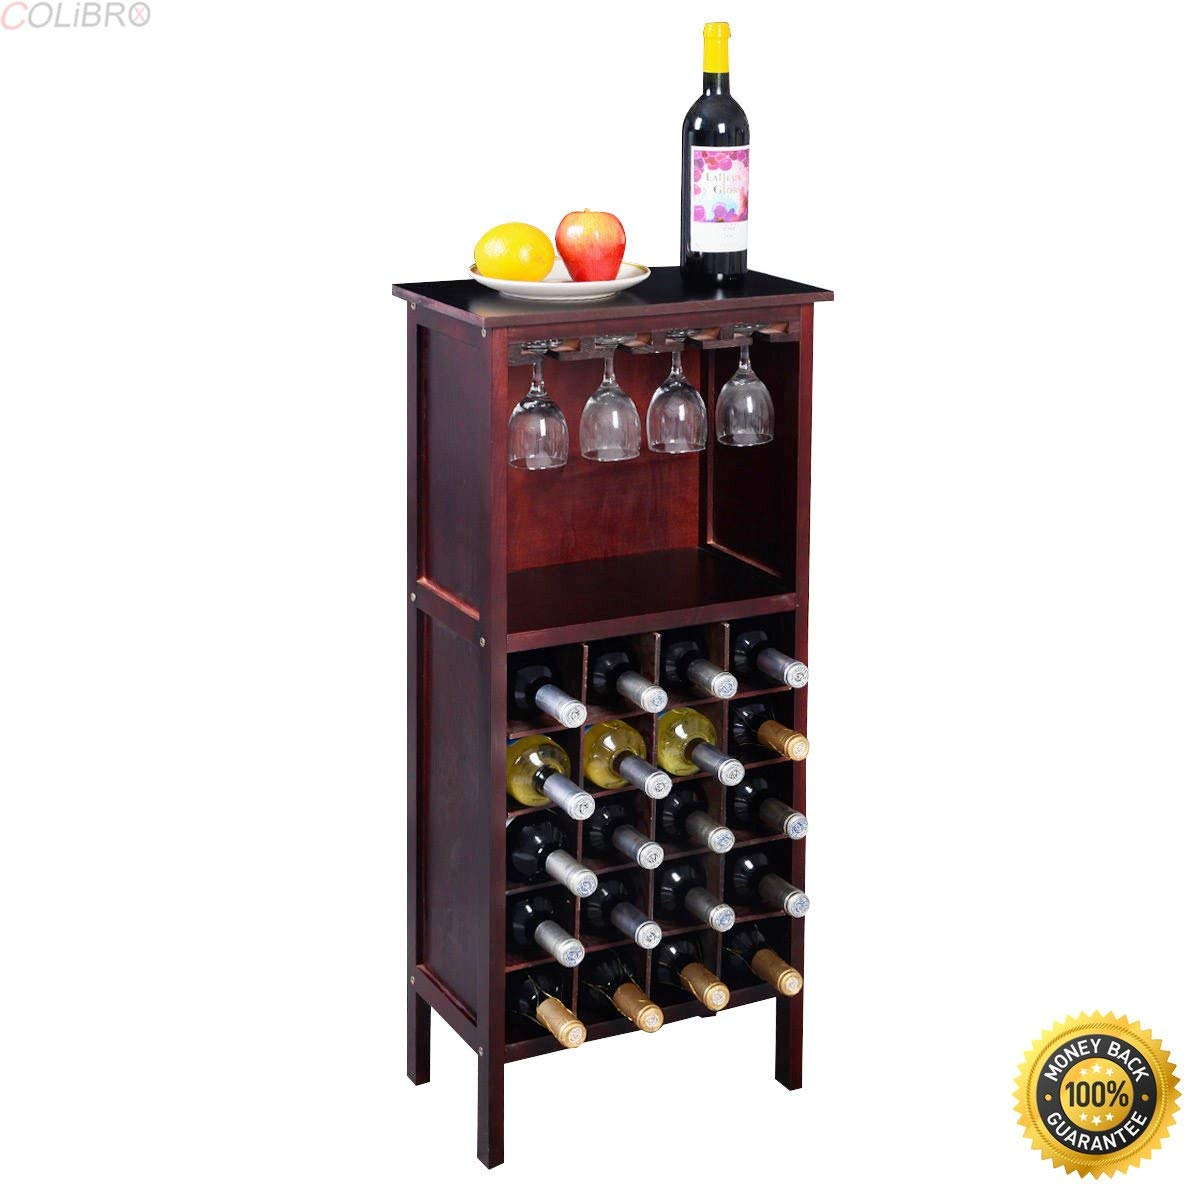 Get Quotations Colibrox New Wood Wine Cabinet Bottle Holder Storage Kitchen Home Bar W Gl